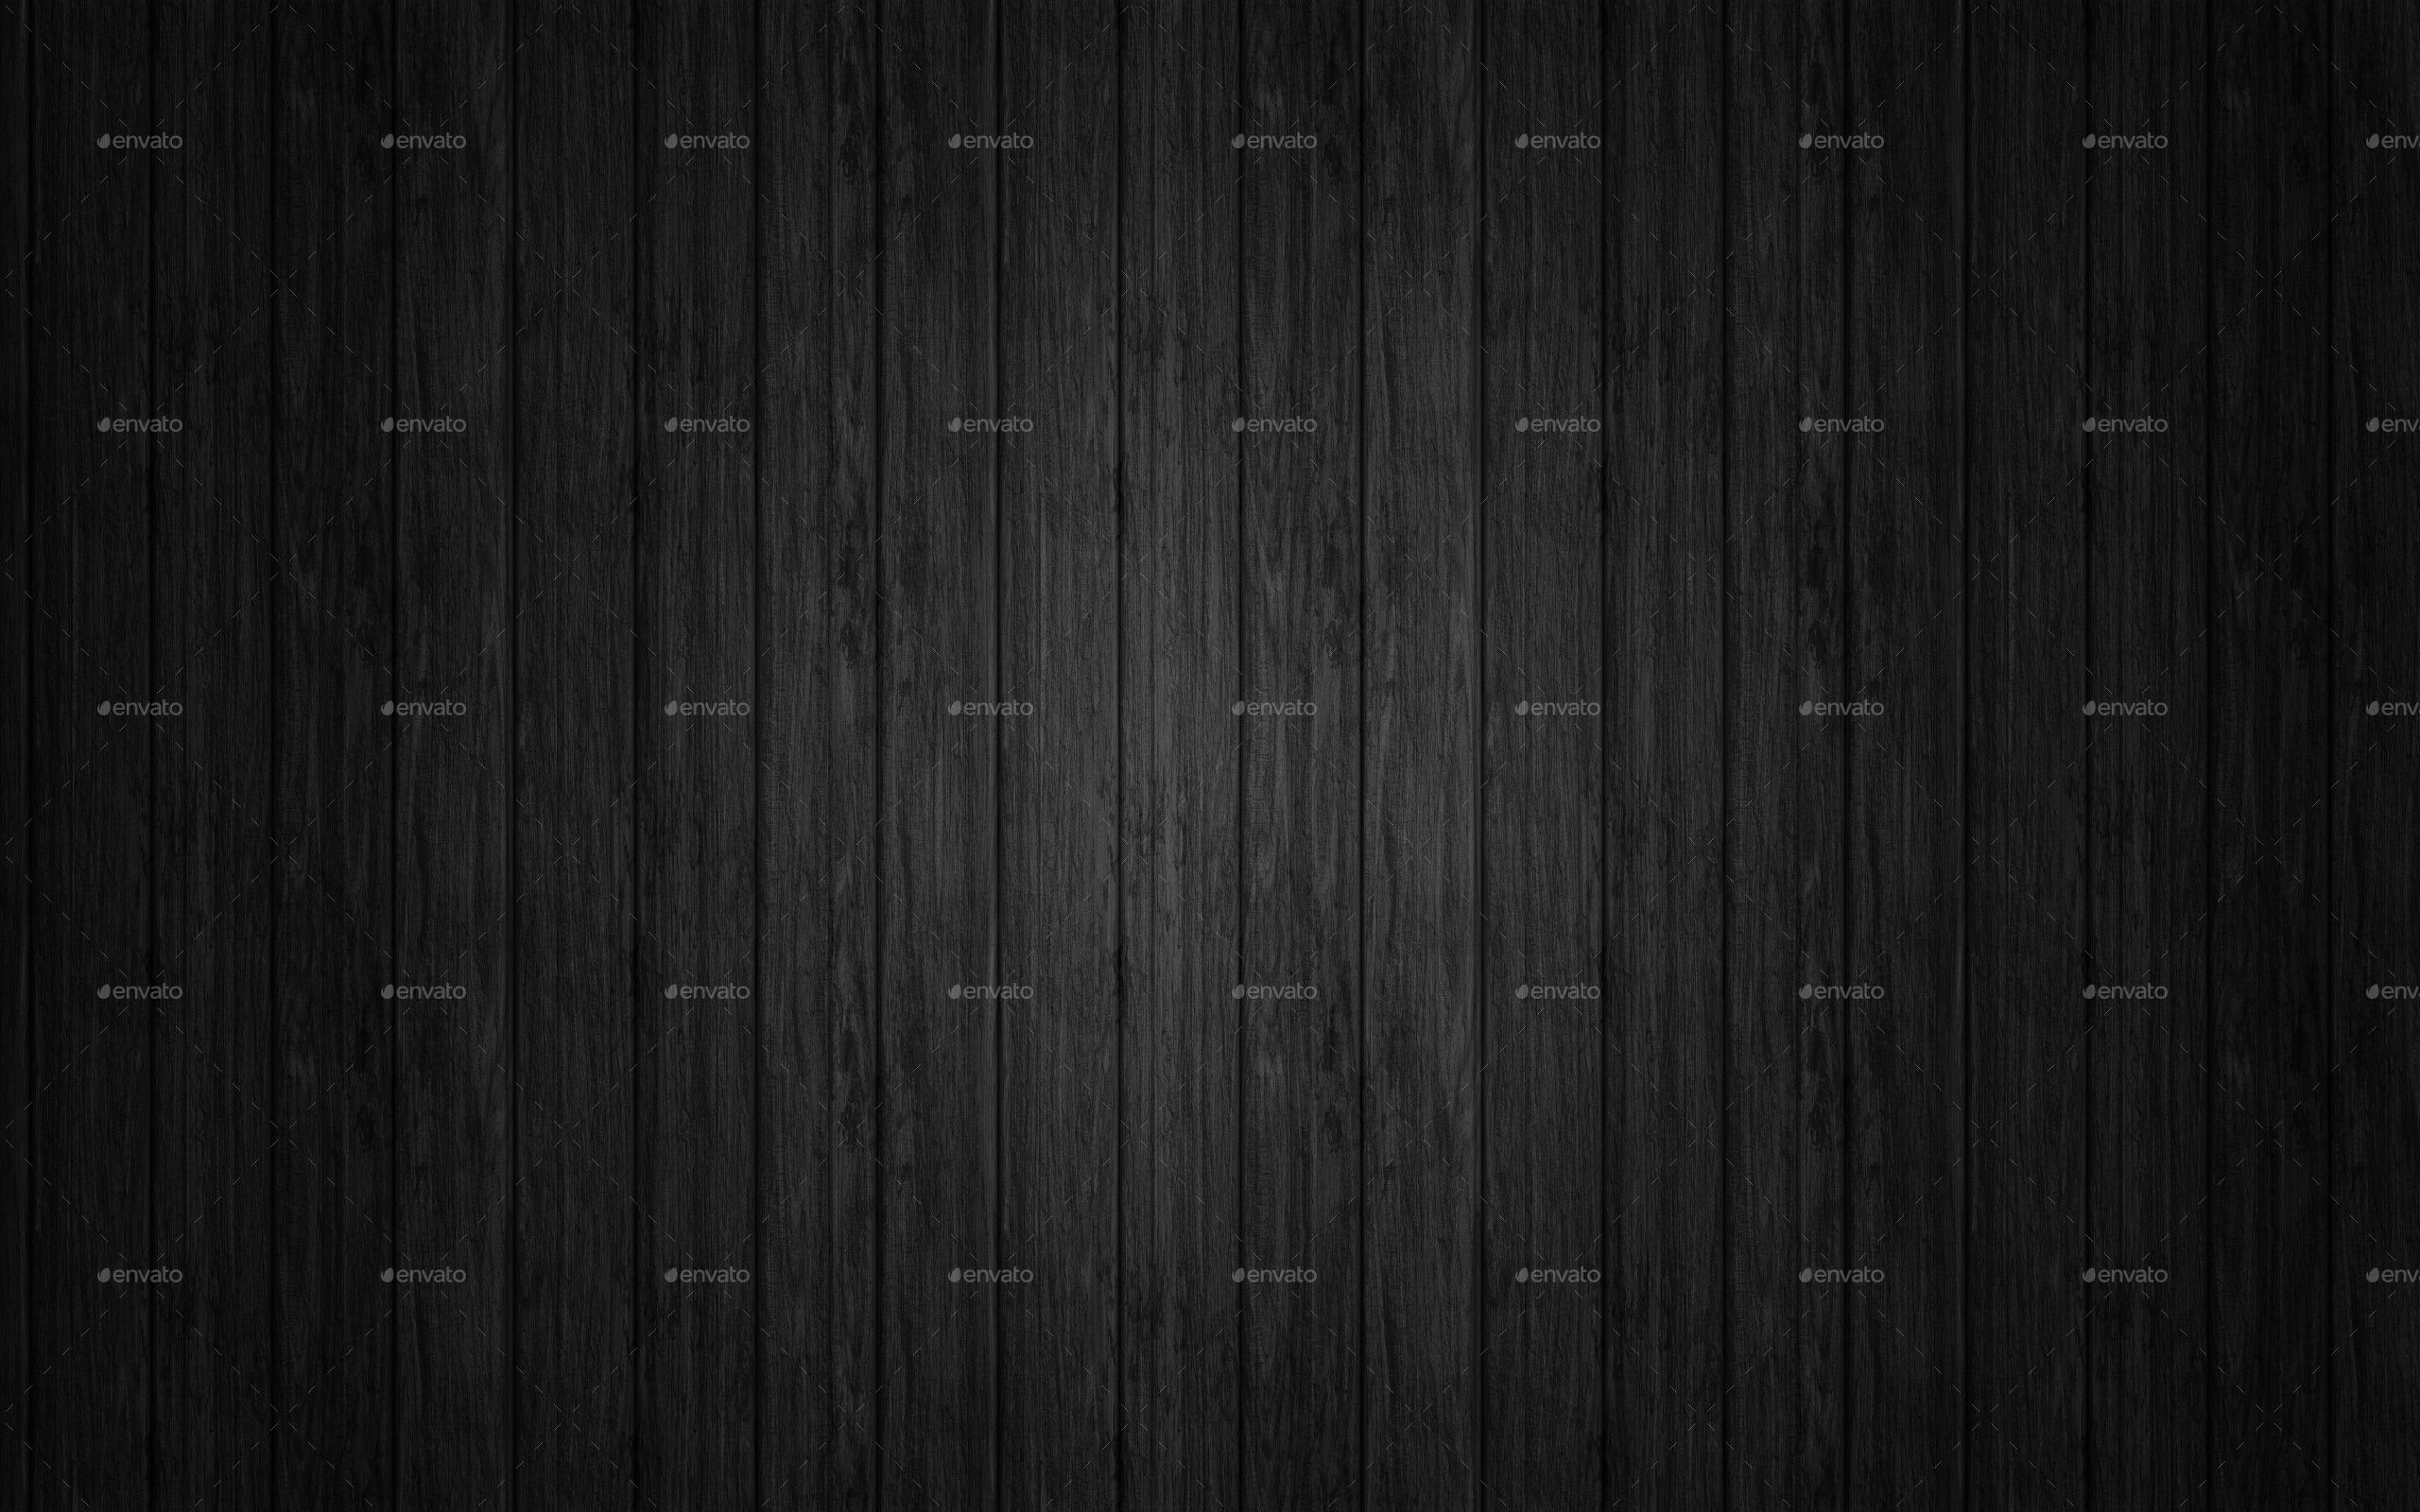 30 black wood background textures by sanches812 graphicriver. Black Bedroom Furniture Sets. Home Design Ideas